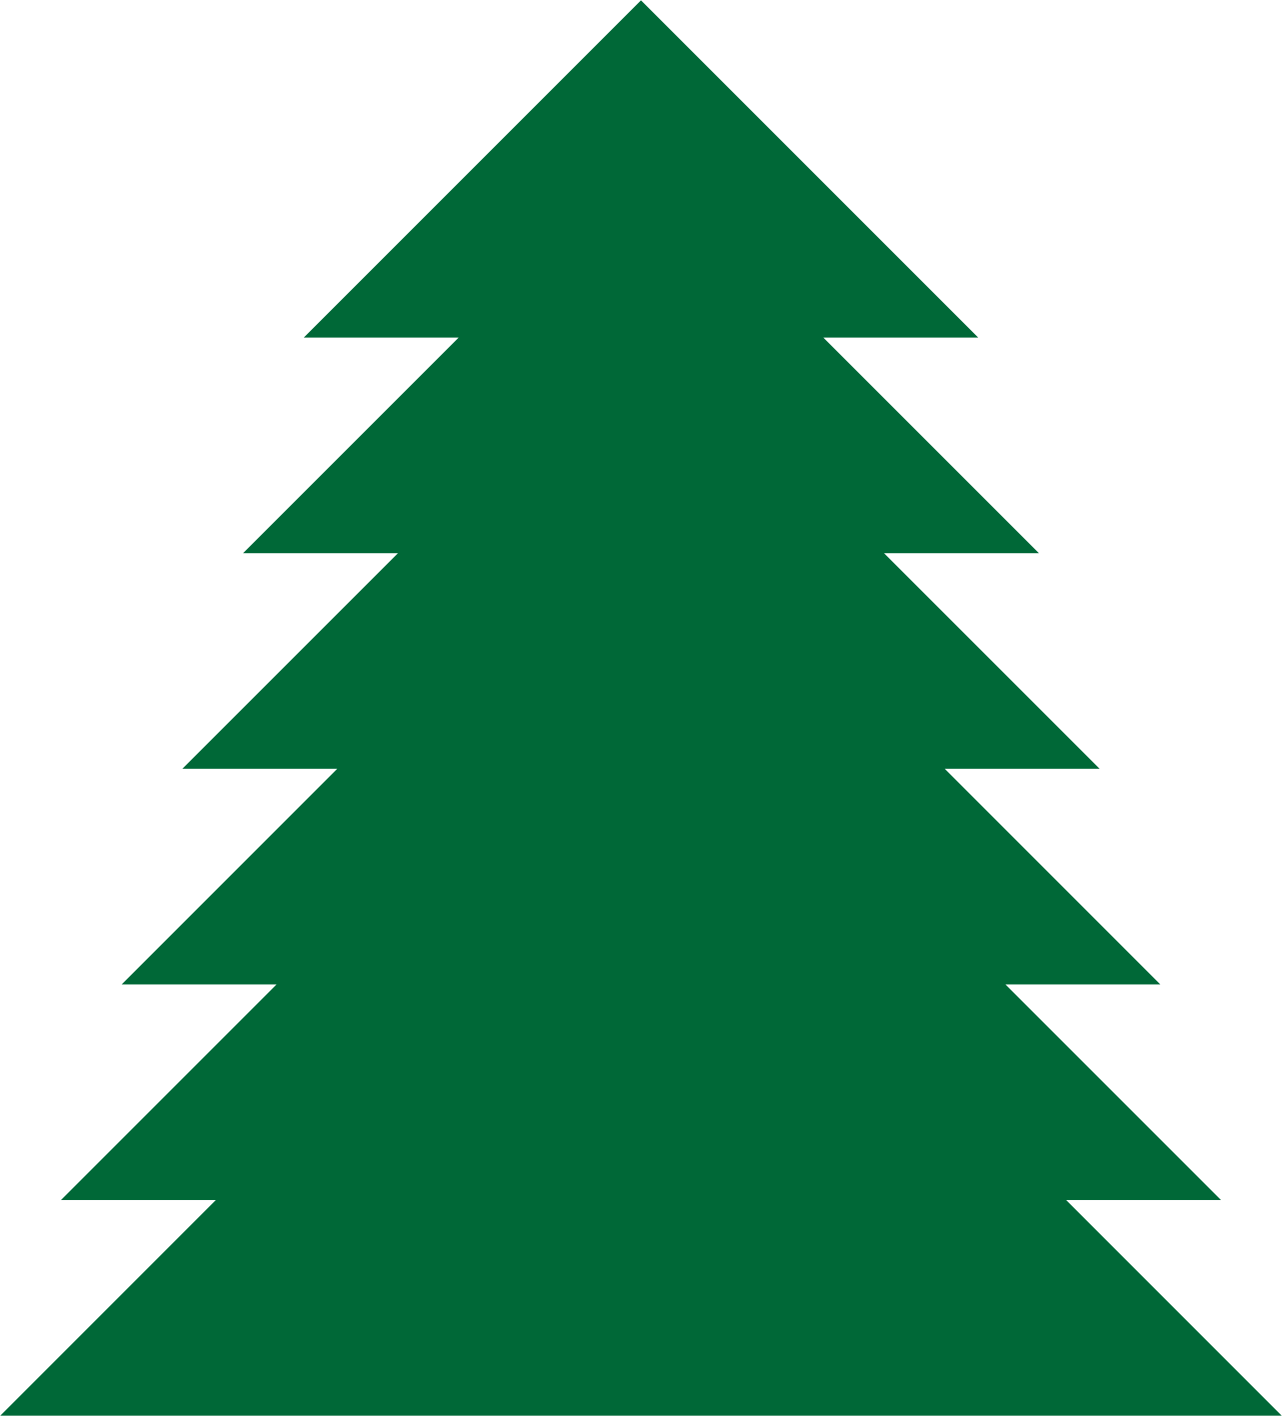 Christmas Tree Clipart Silhouette.Vector Christmas Tree Silhouette At Getdrawings Com Free